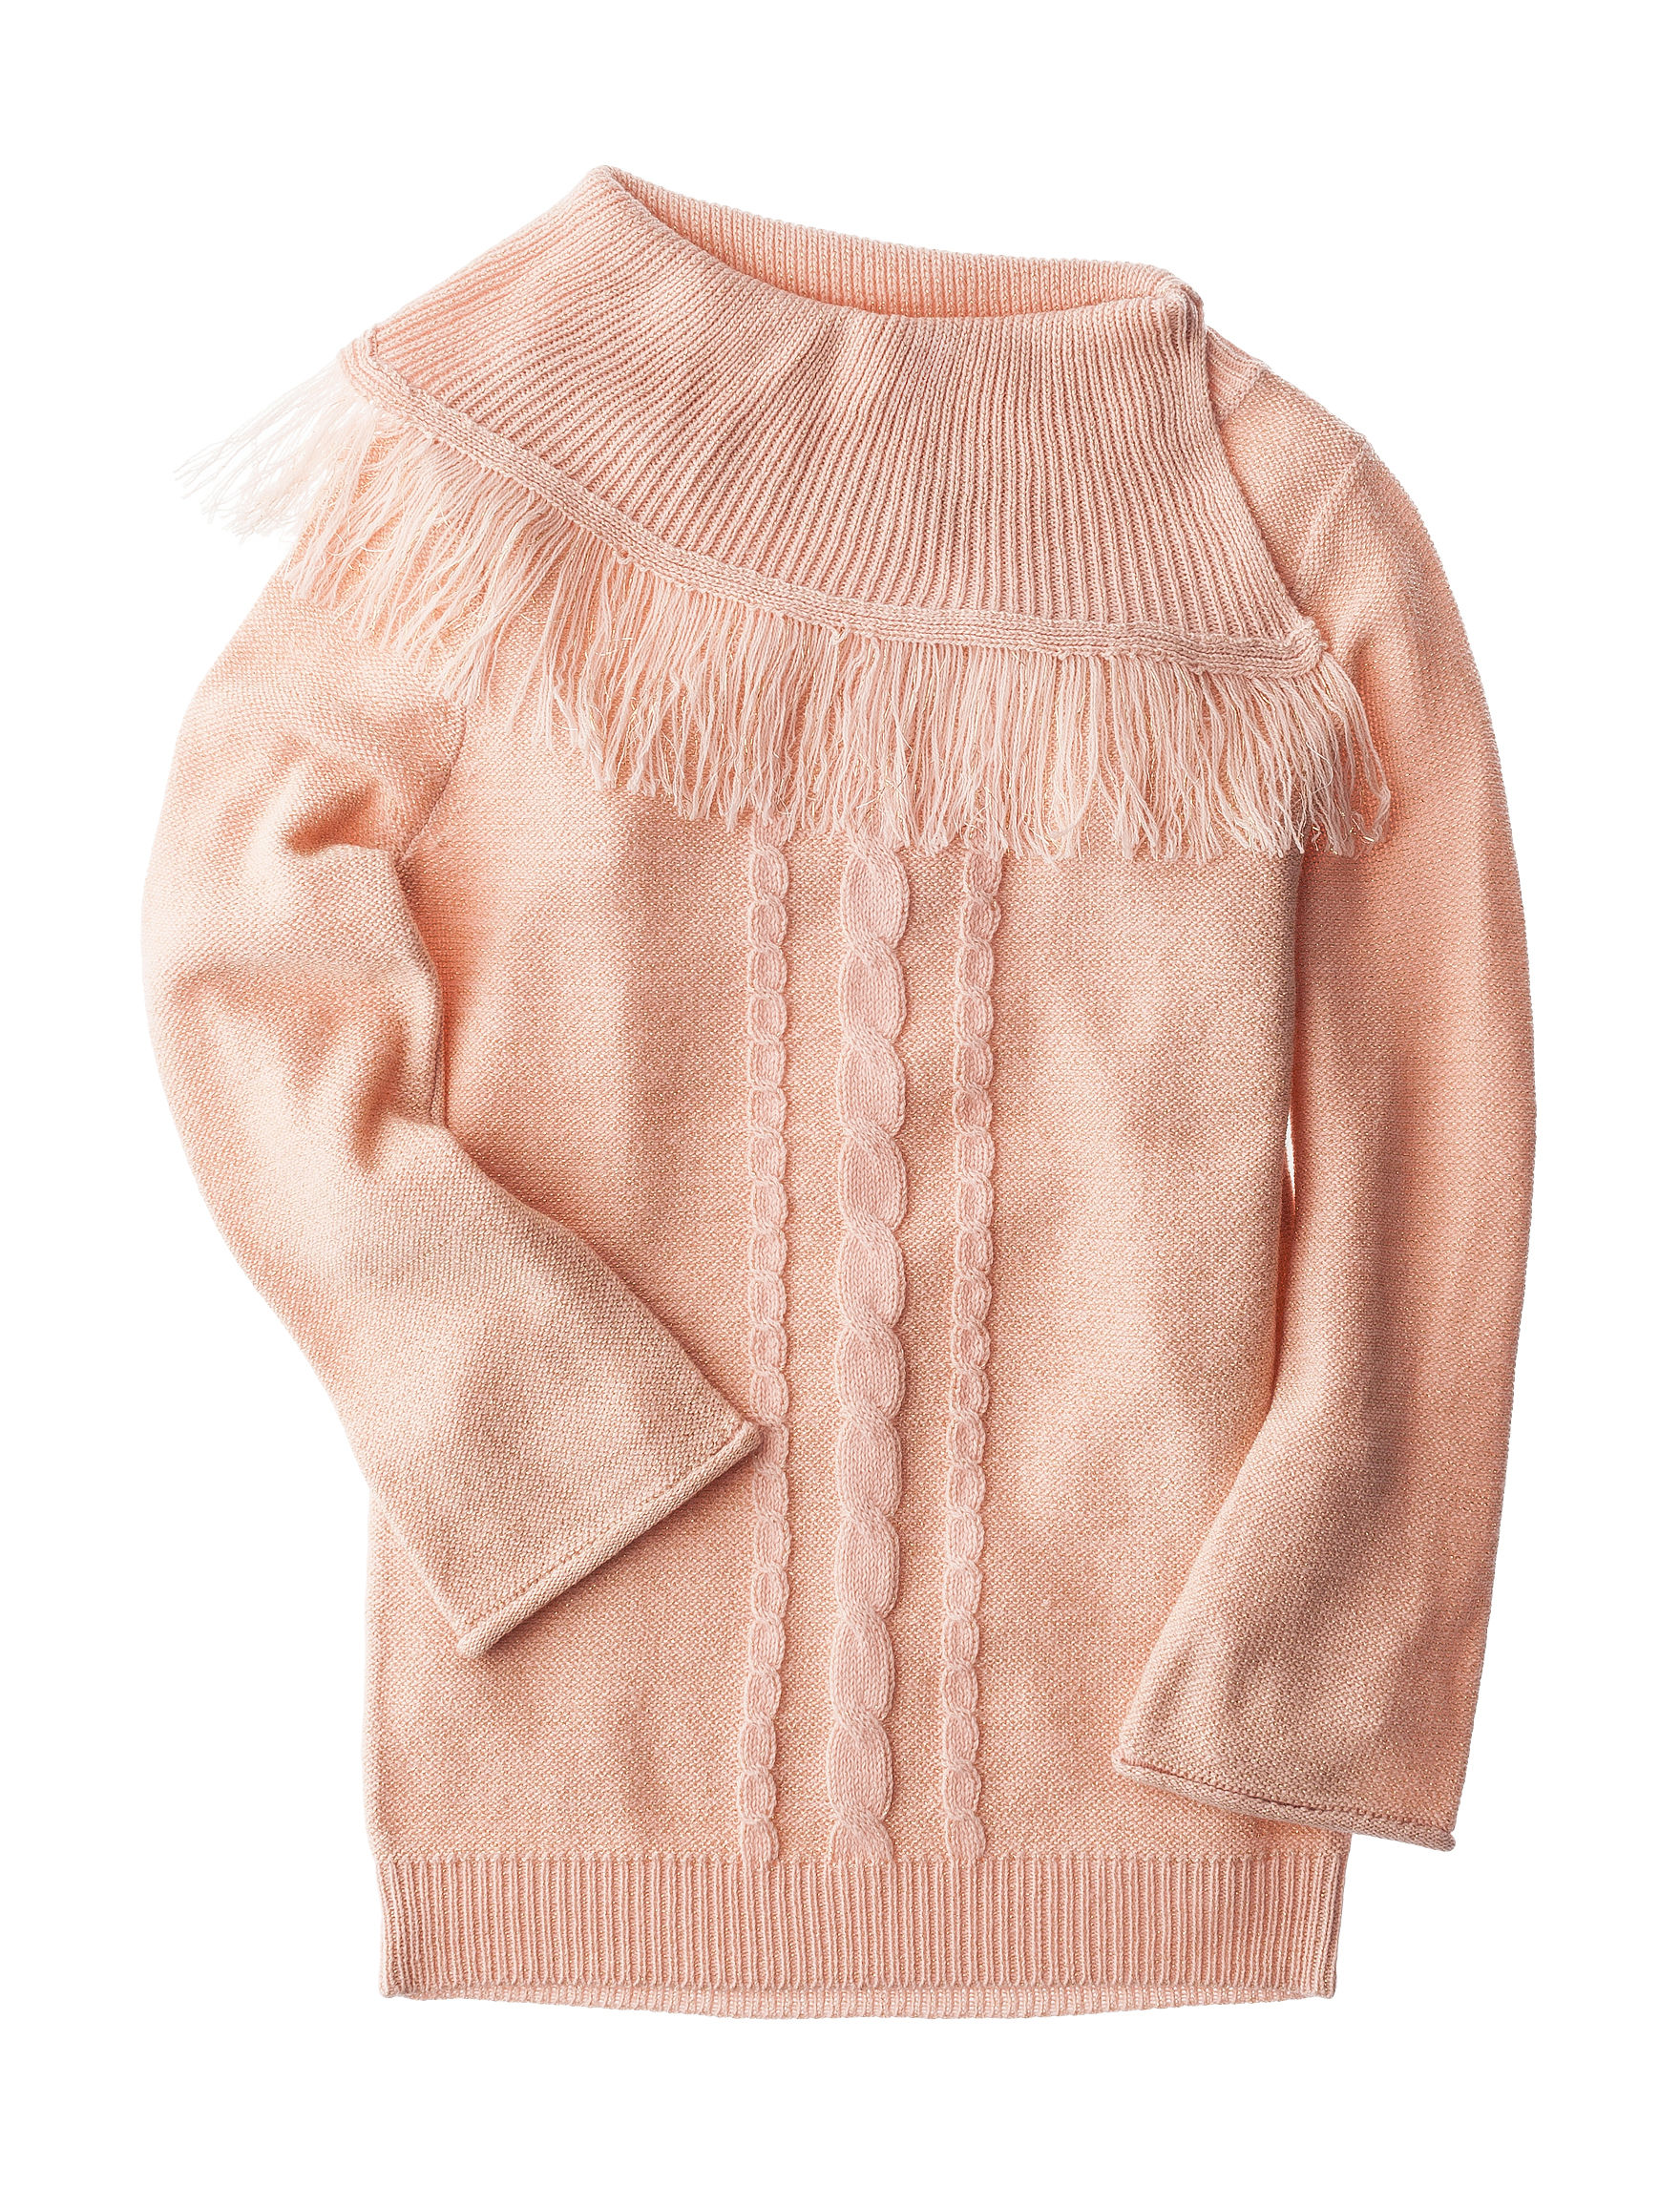 Planet Gold Cable Knit Fringe Sweater - Girls 7-16 | Stage Stores